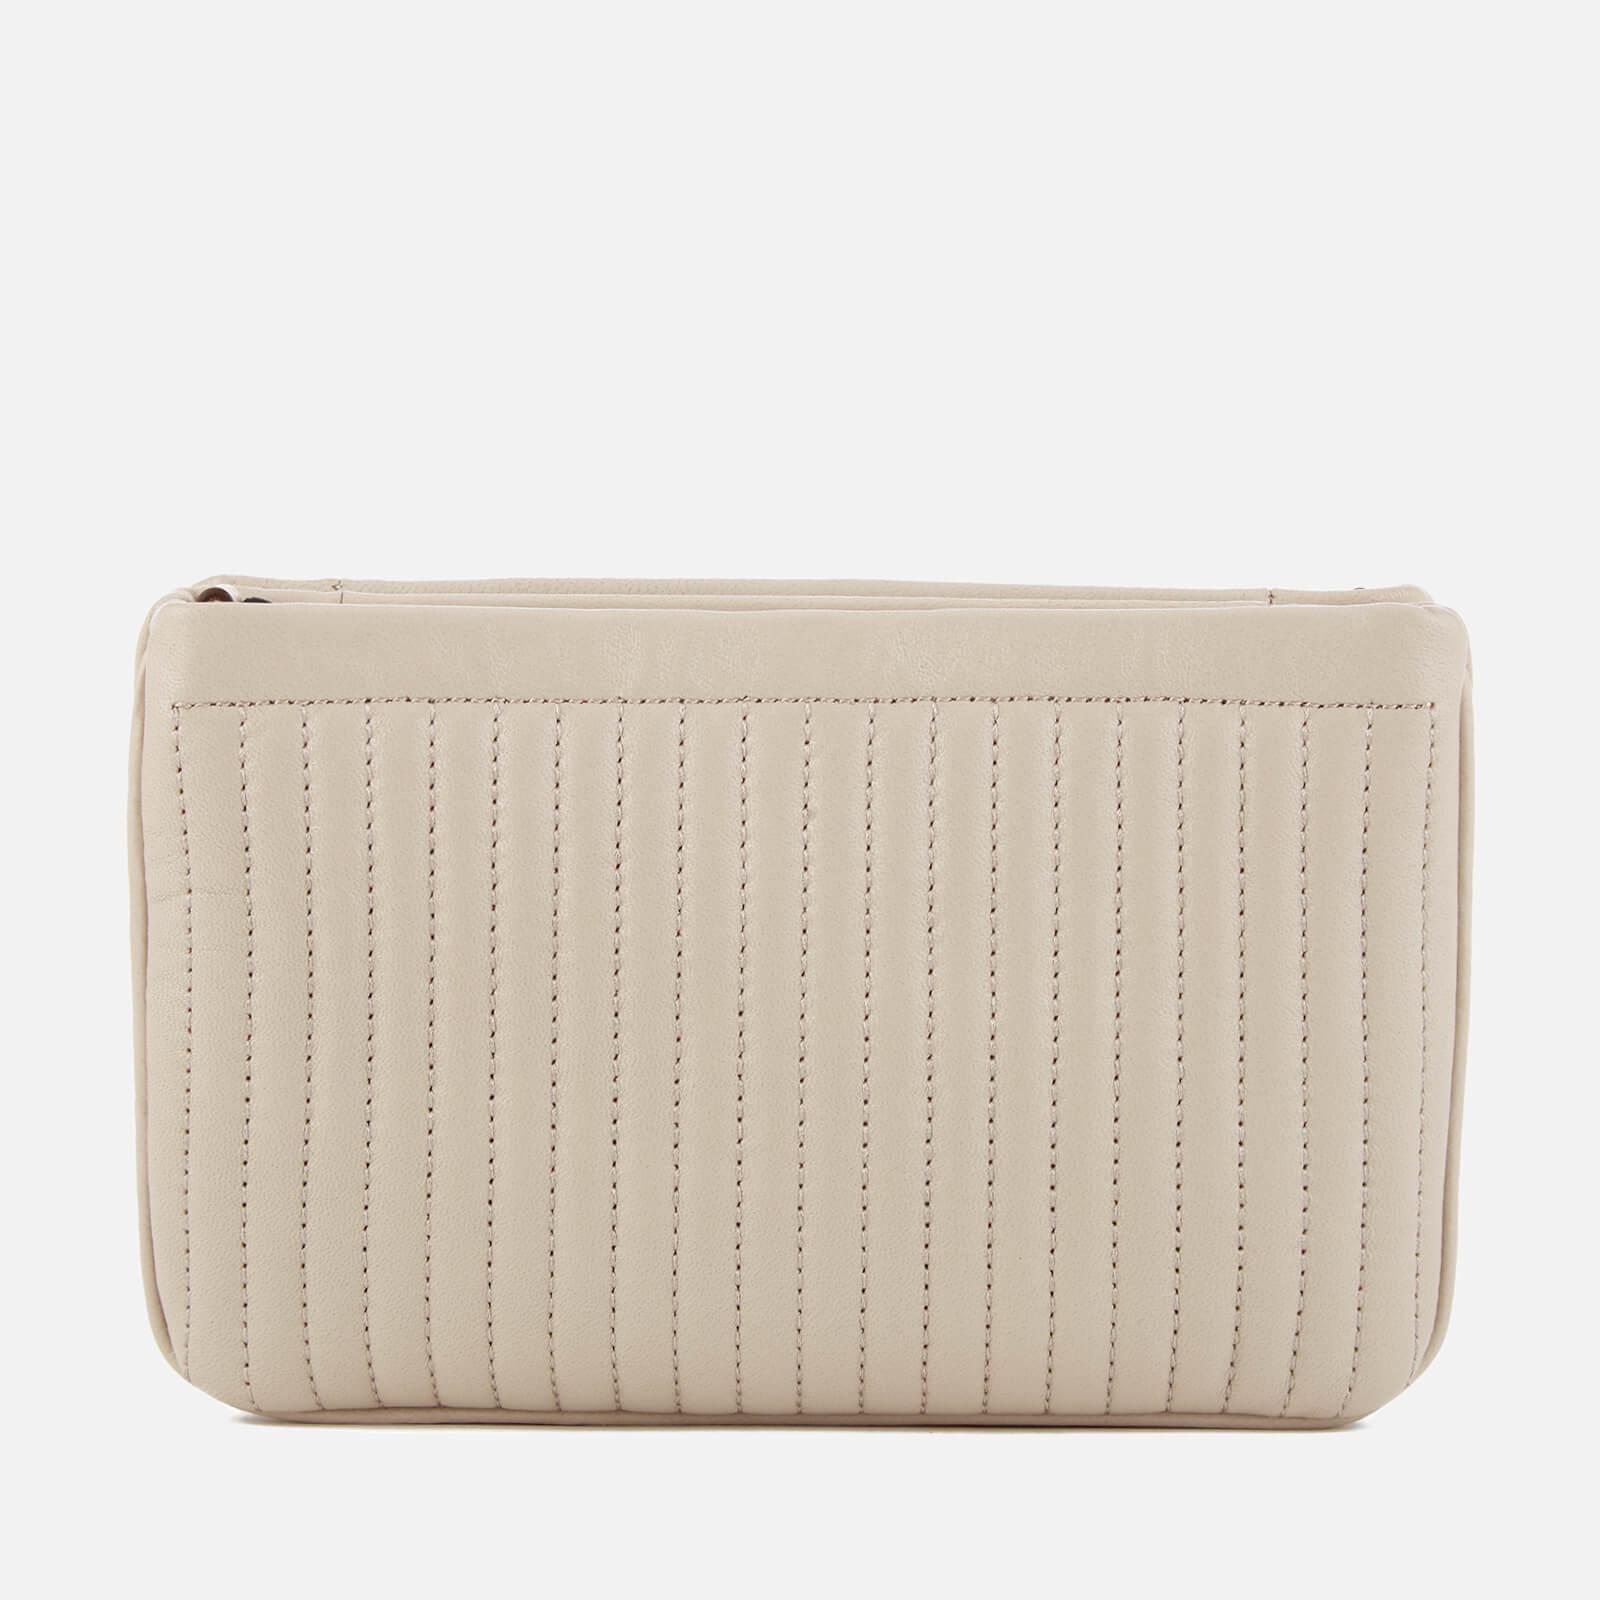 DKNY Leather Pinstripe Quilted Mini Double Compartment Cross Body Bag